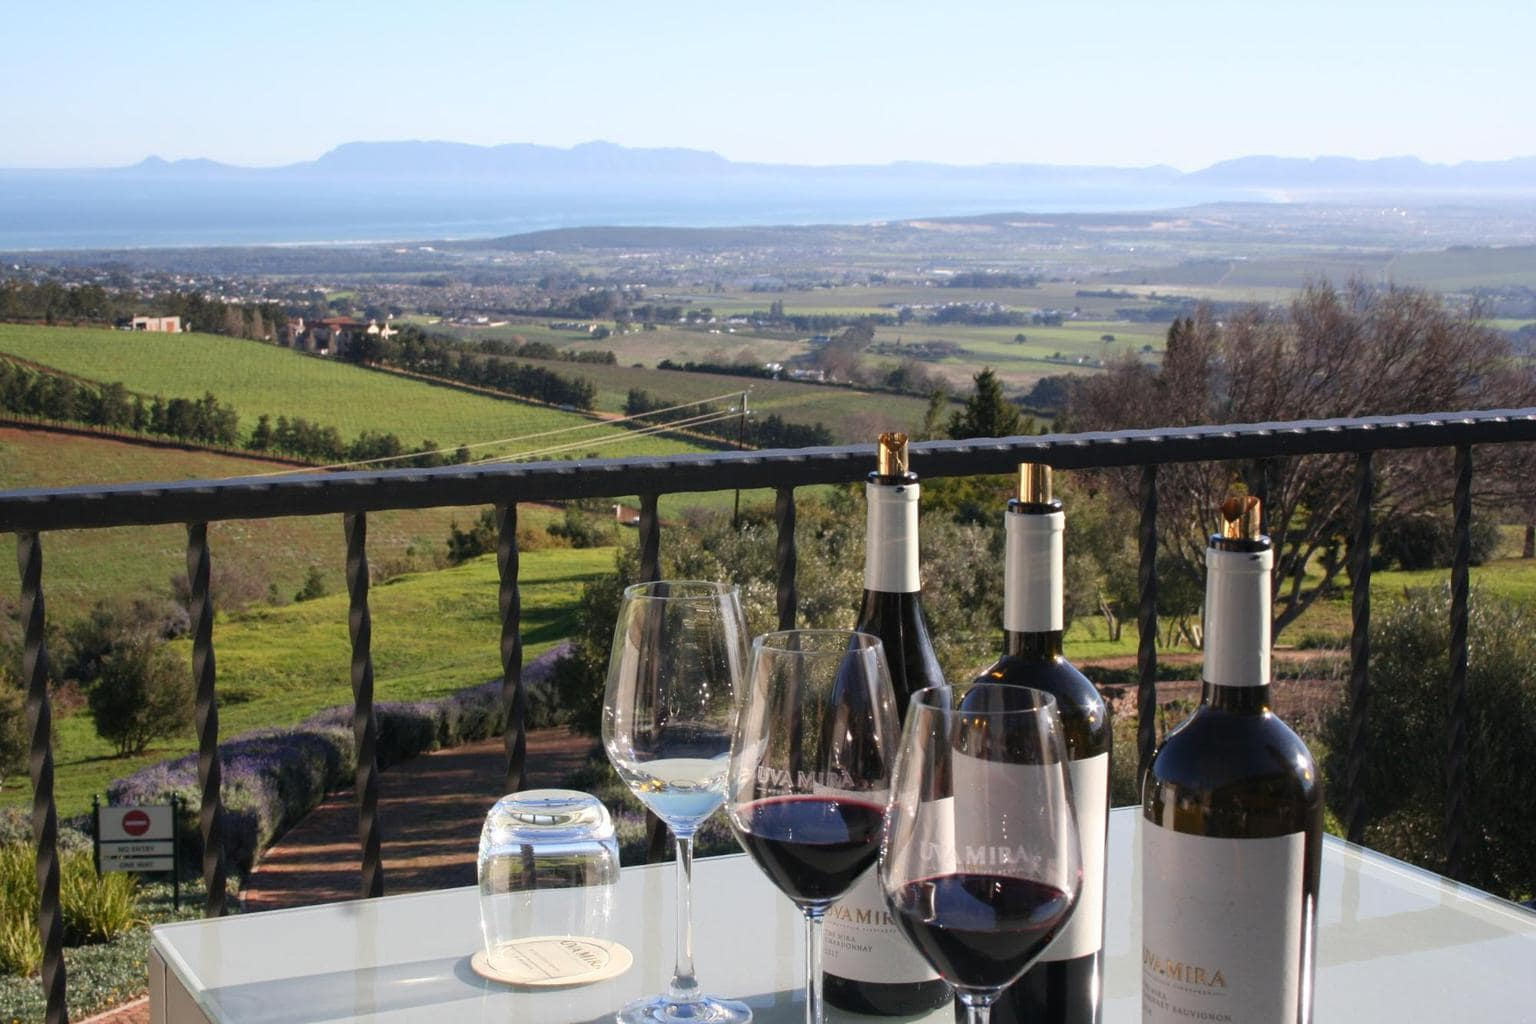 Looking out at the view at Uva Mira in Stellenbosch